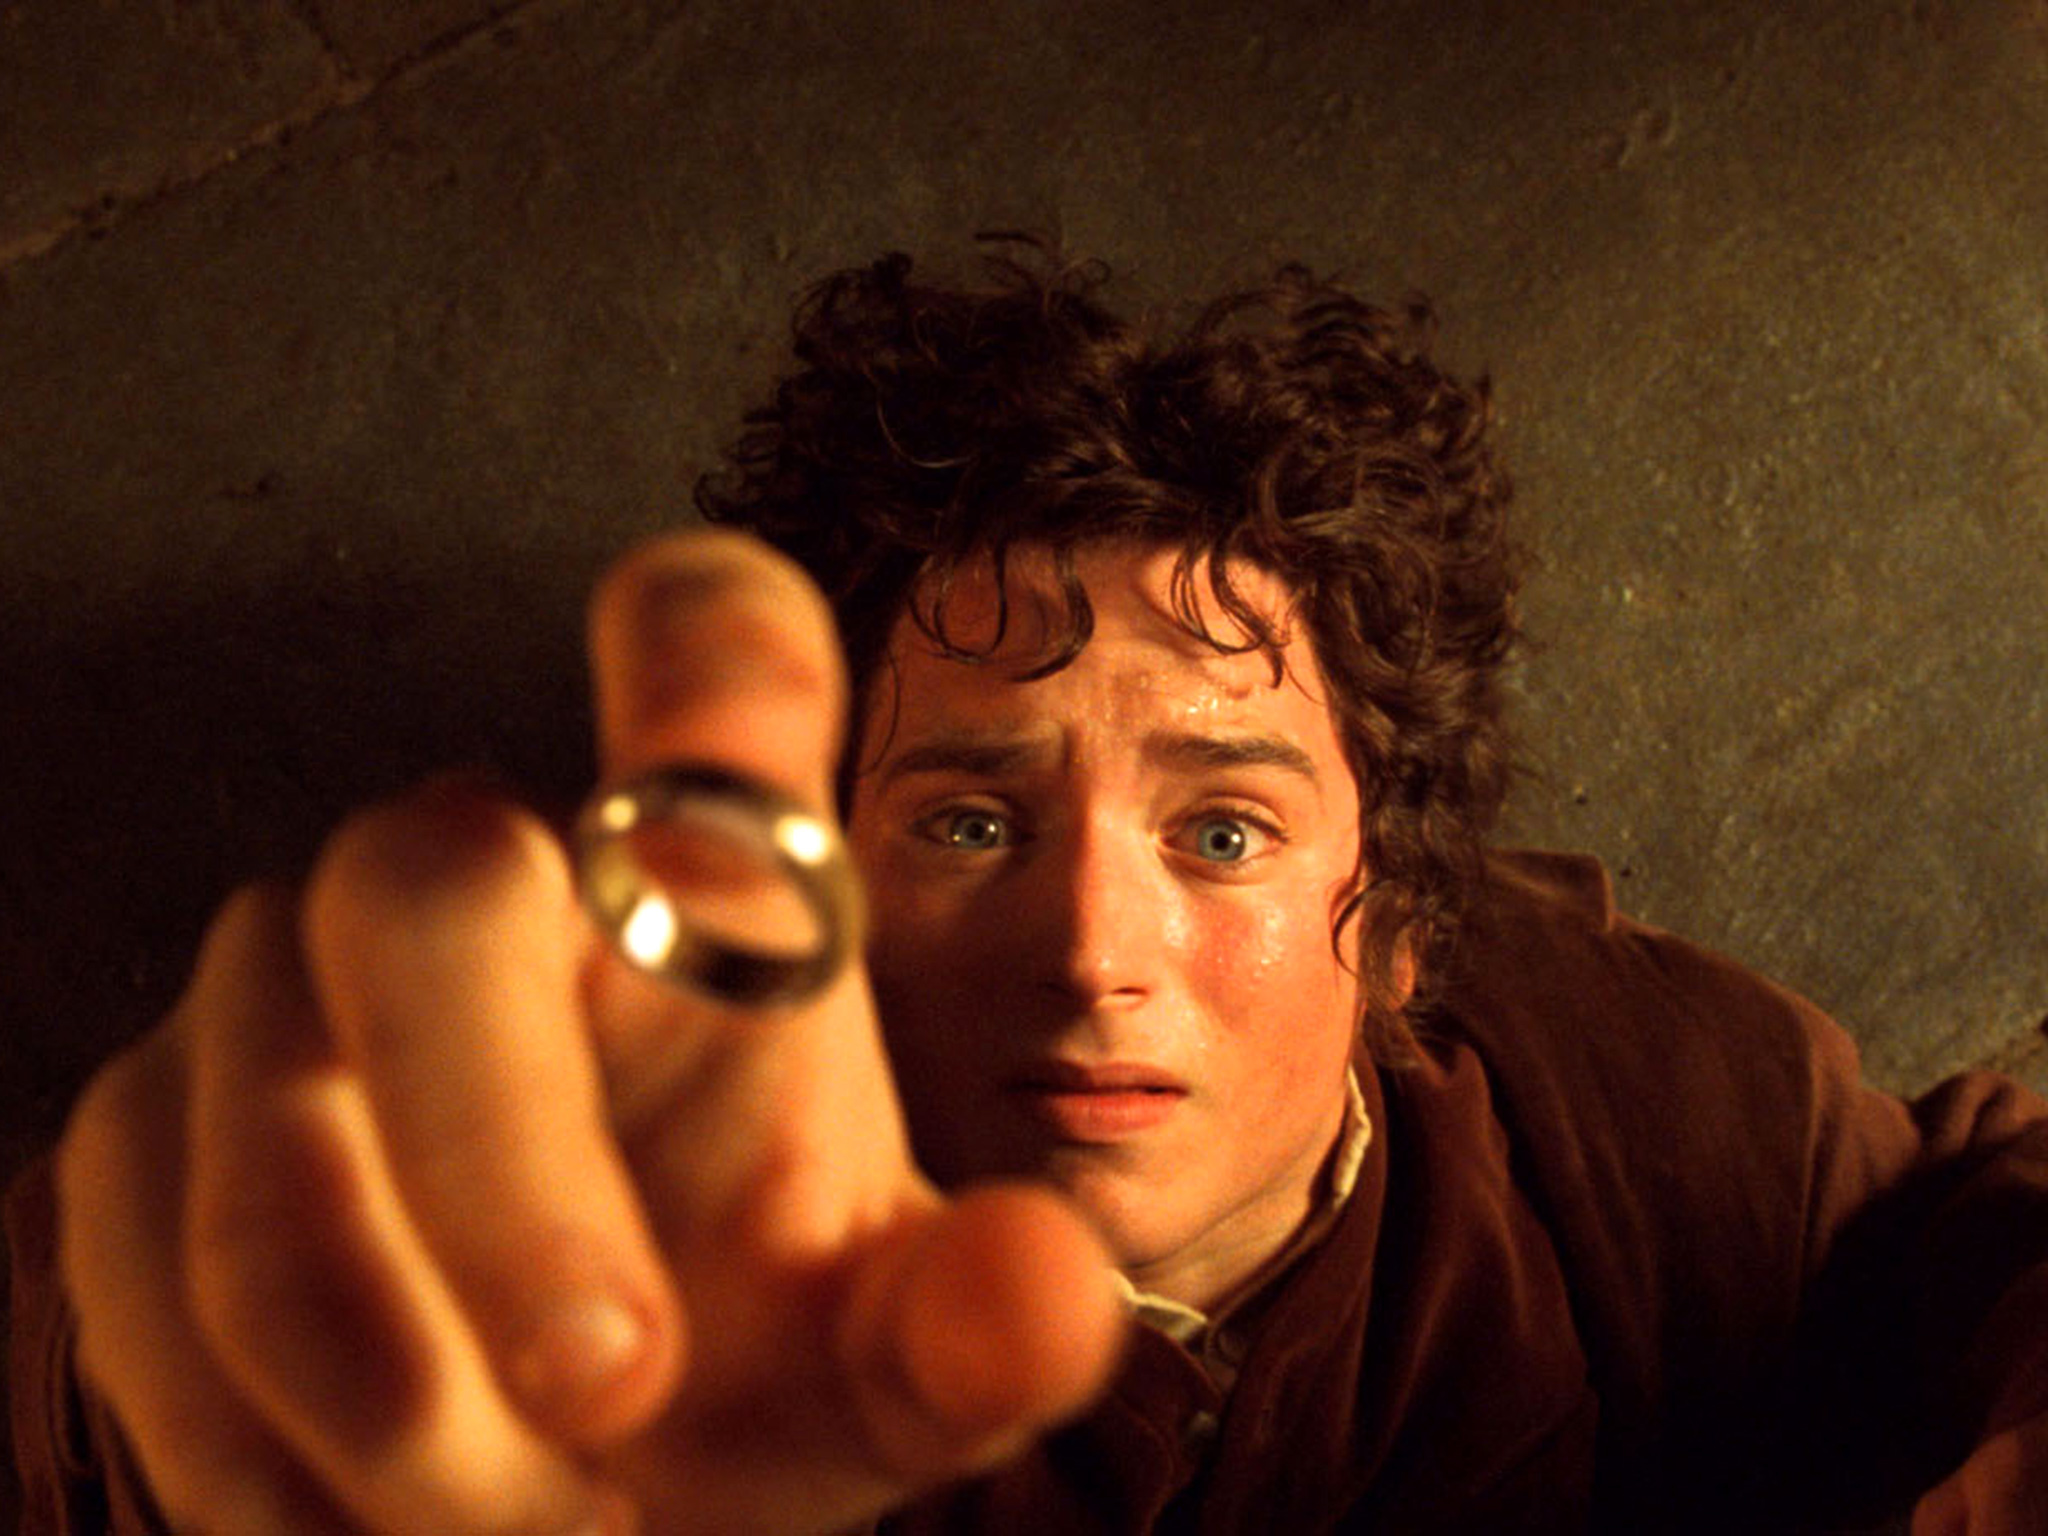 A Lord of the Rings movie marathon is coming